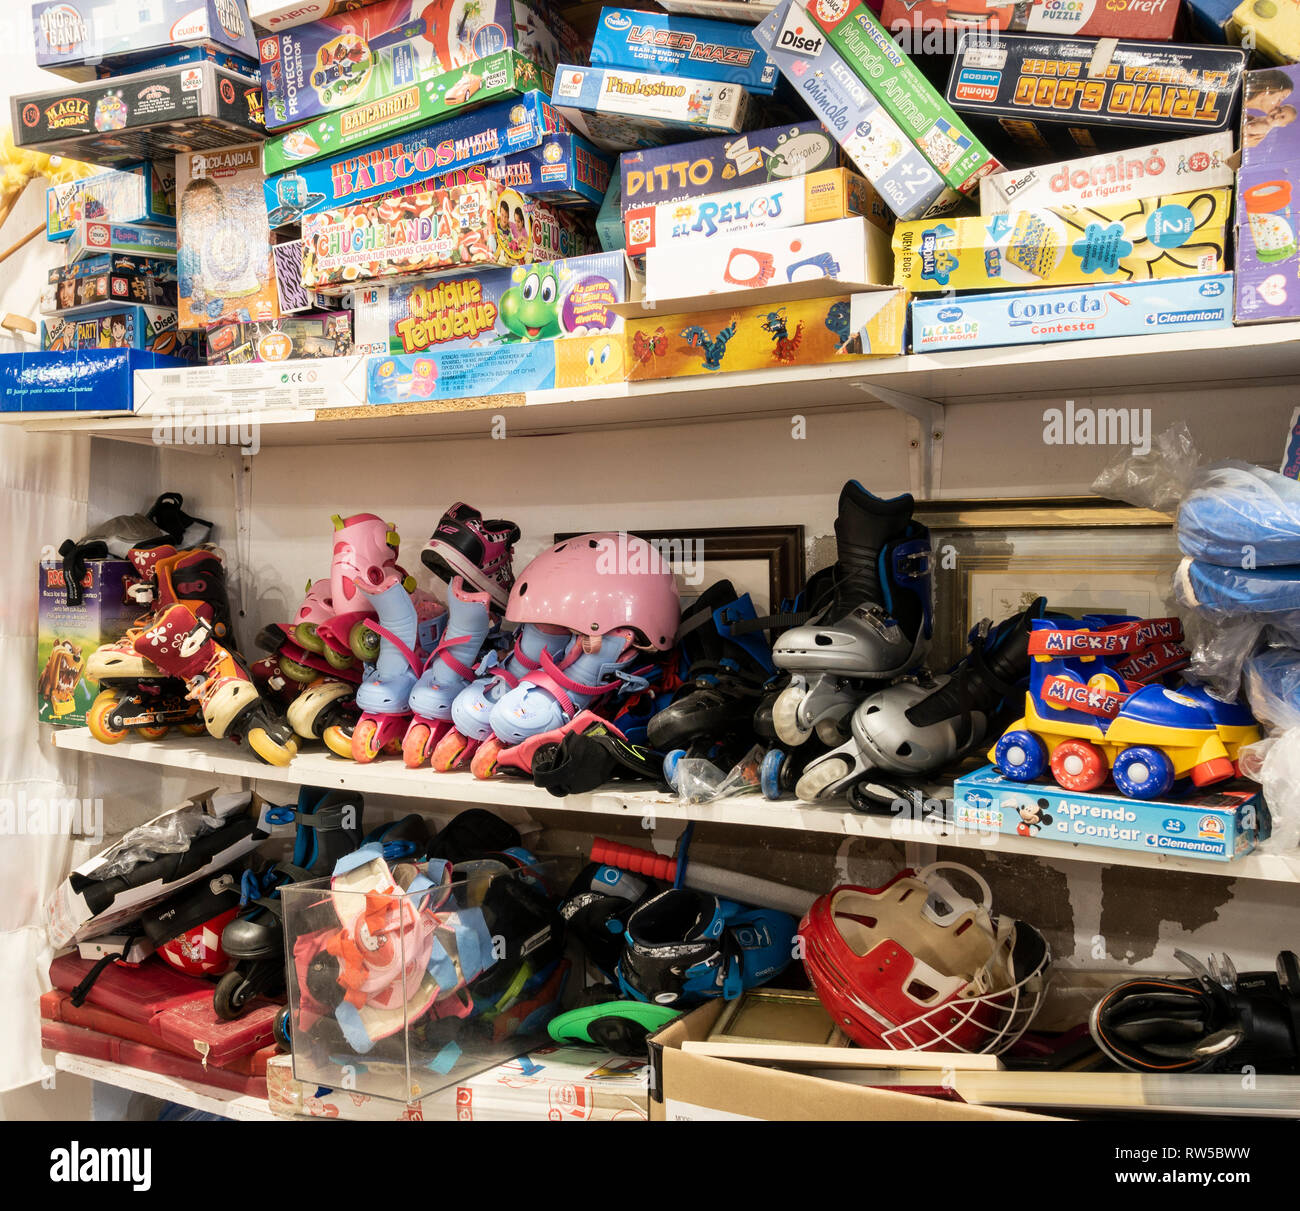 Board games, boxes of toys and roller blades in charity shop in Spain - Stock Image